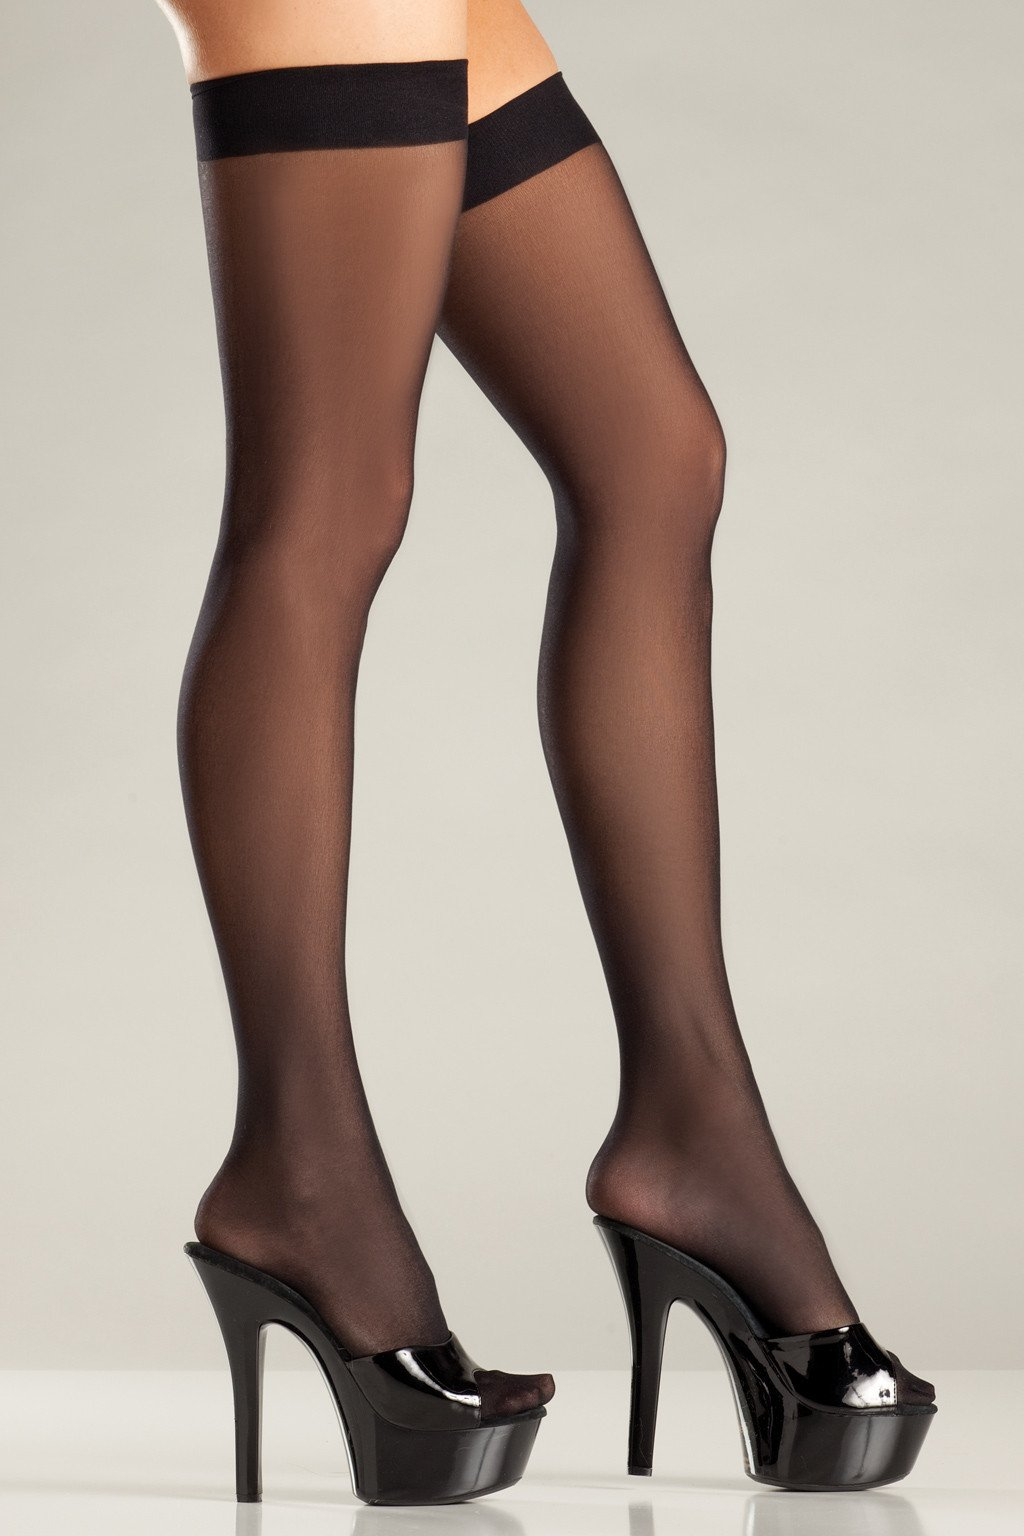 185ded2f2 Be Wicked BW562 Sheer Thigh Hi – Beverly Hills Hosiery